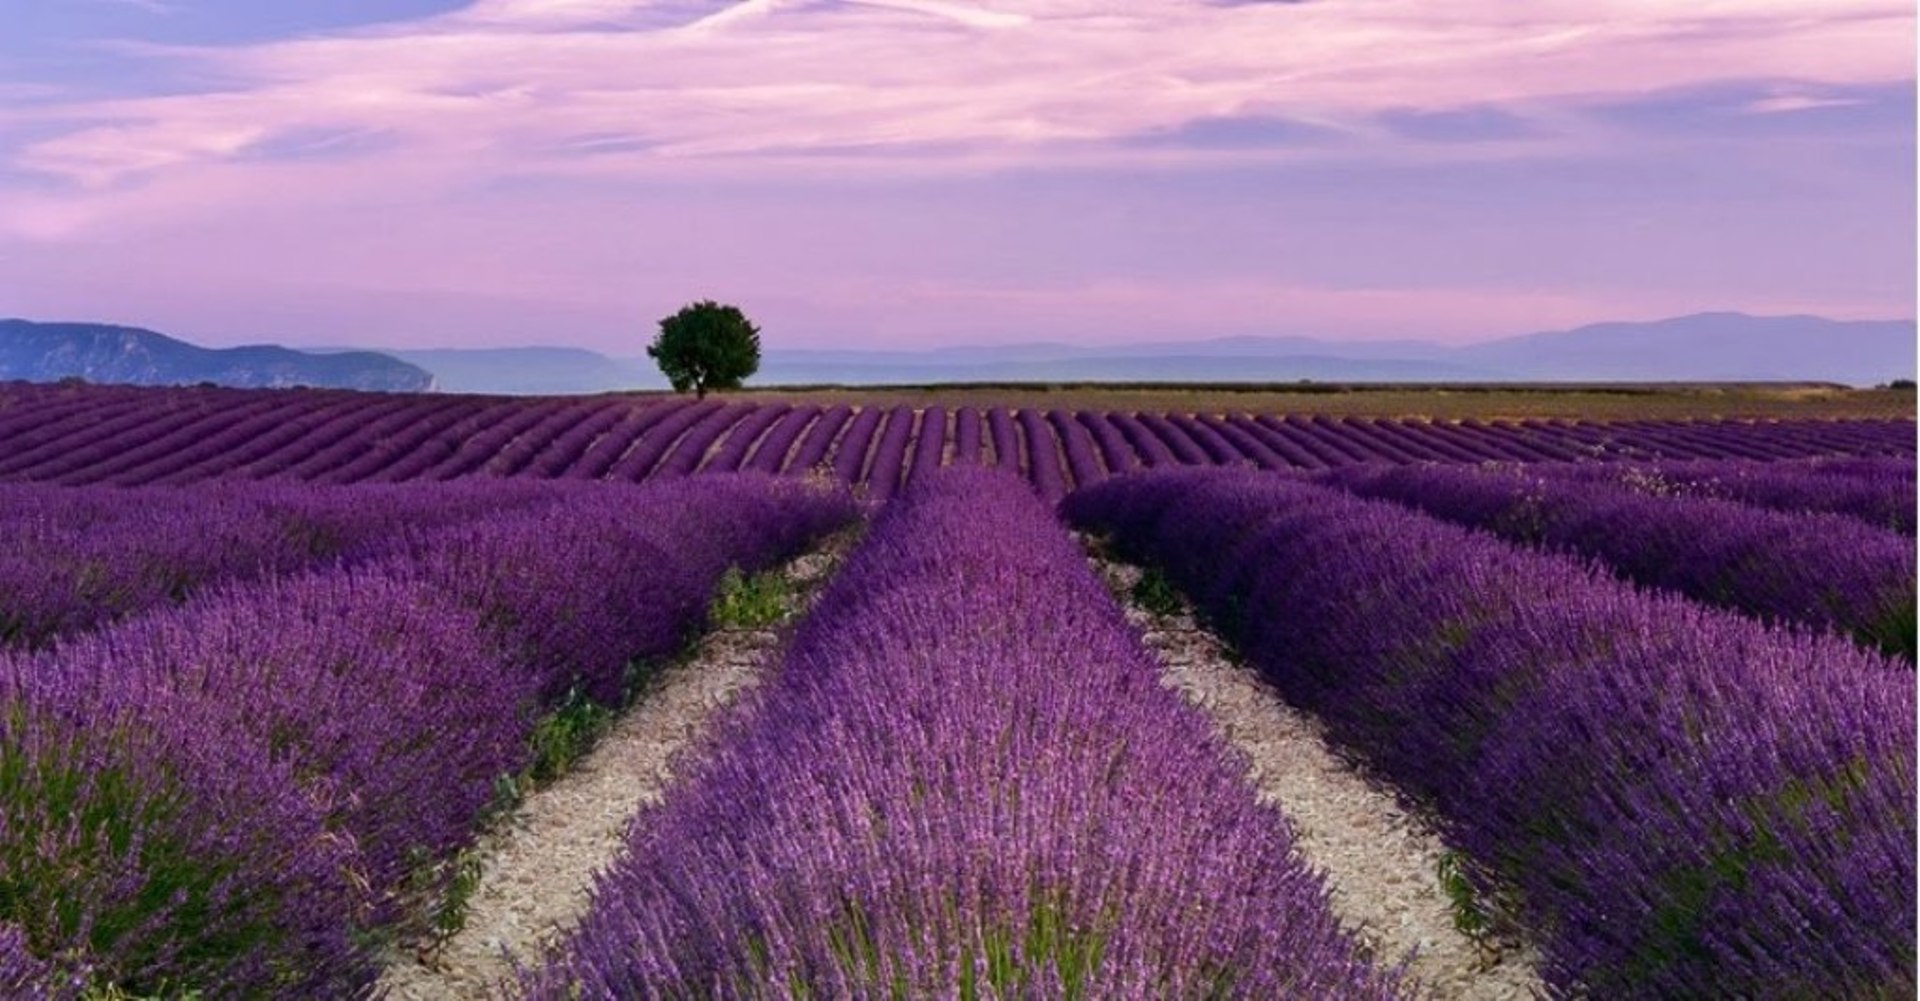 Intoxicating Essence of Lavender Indulge Yourself!